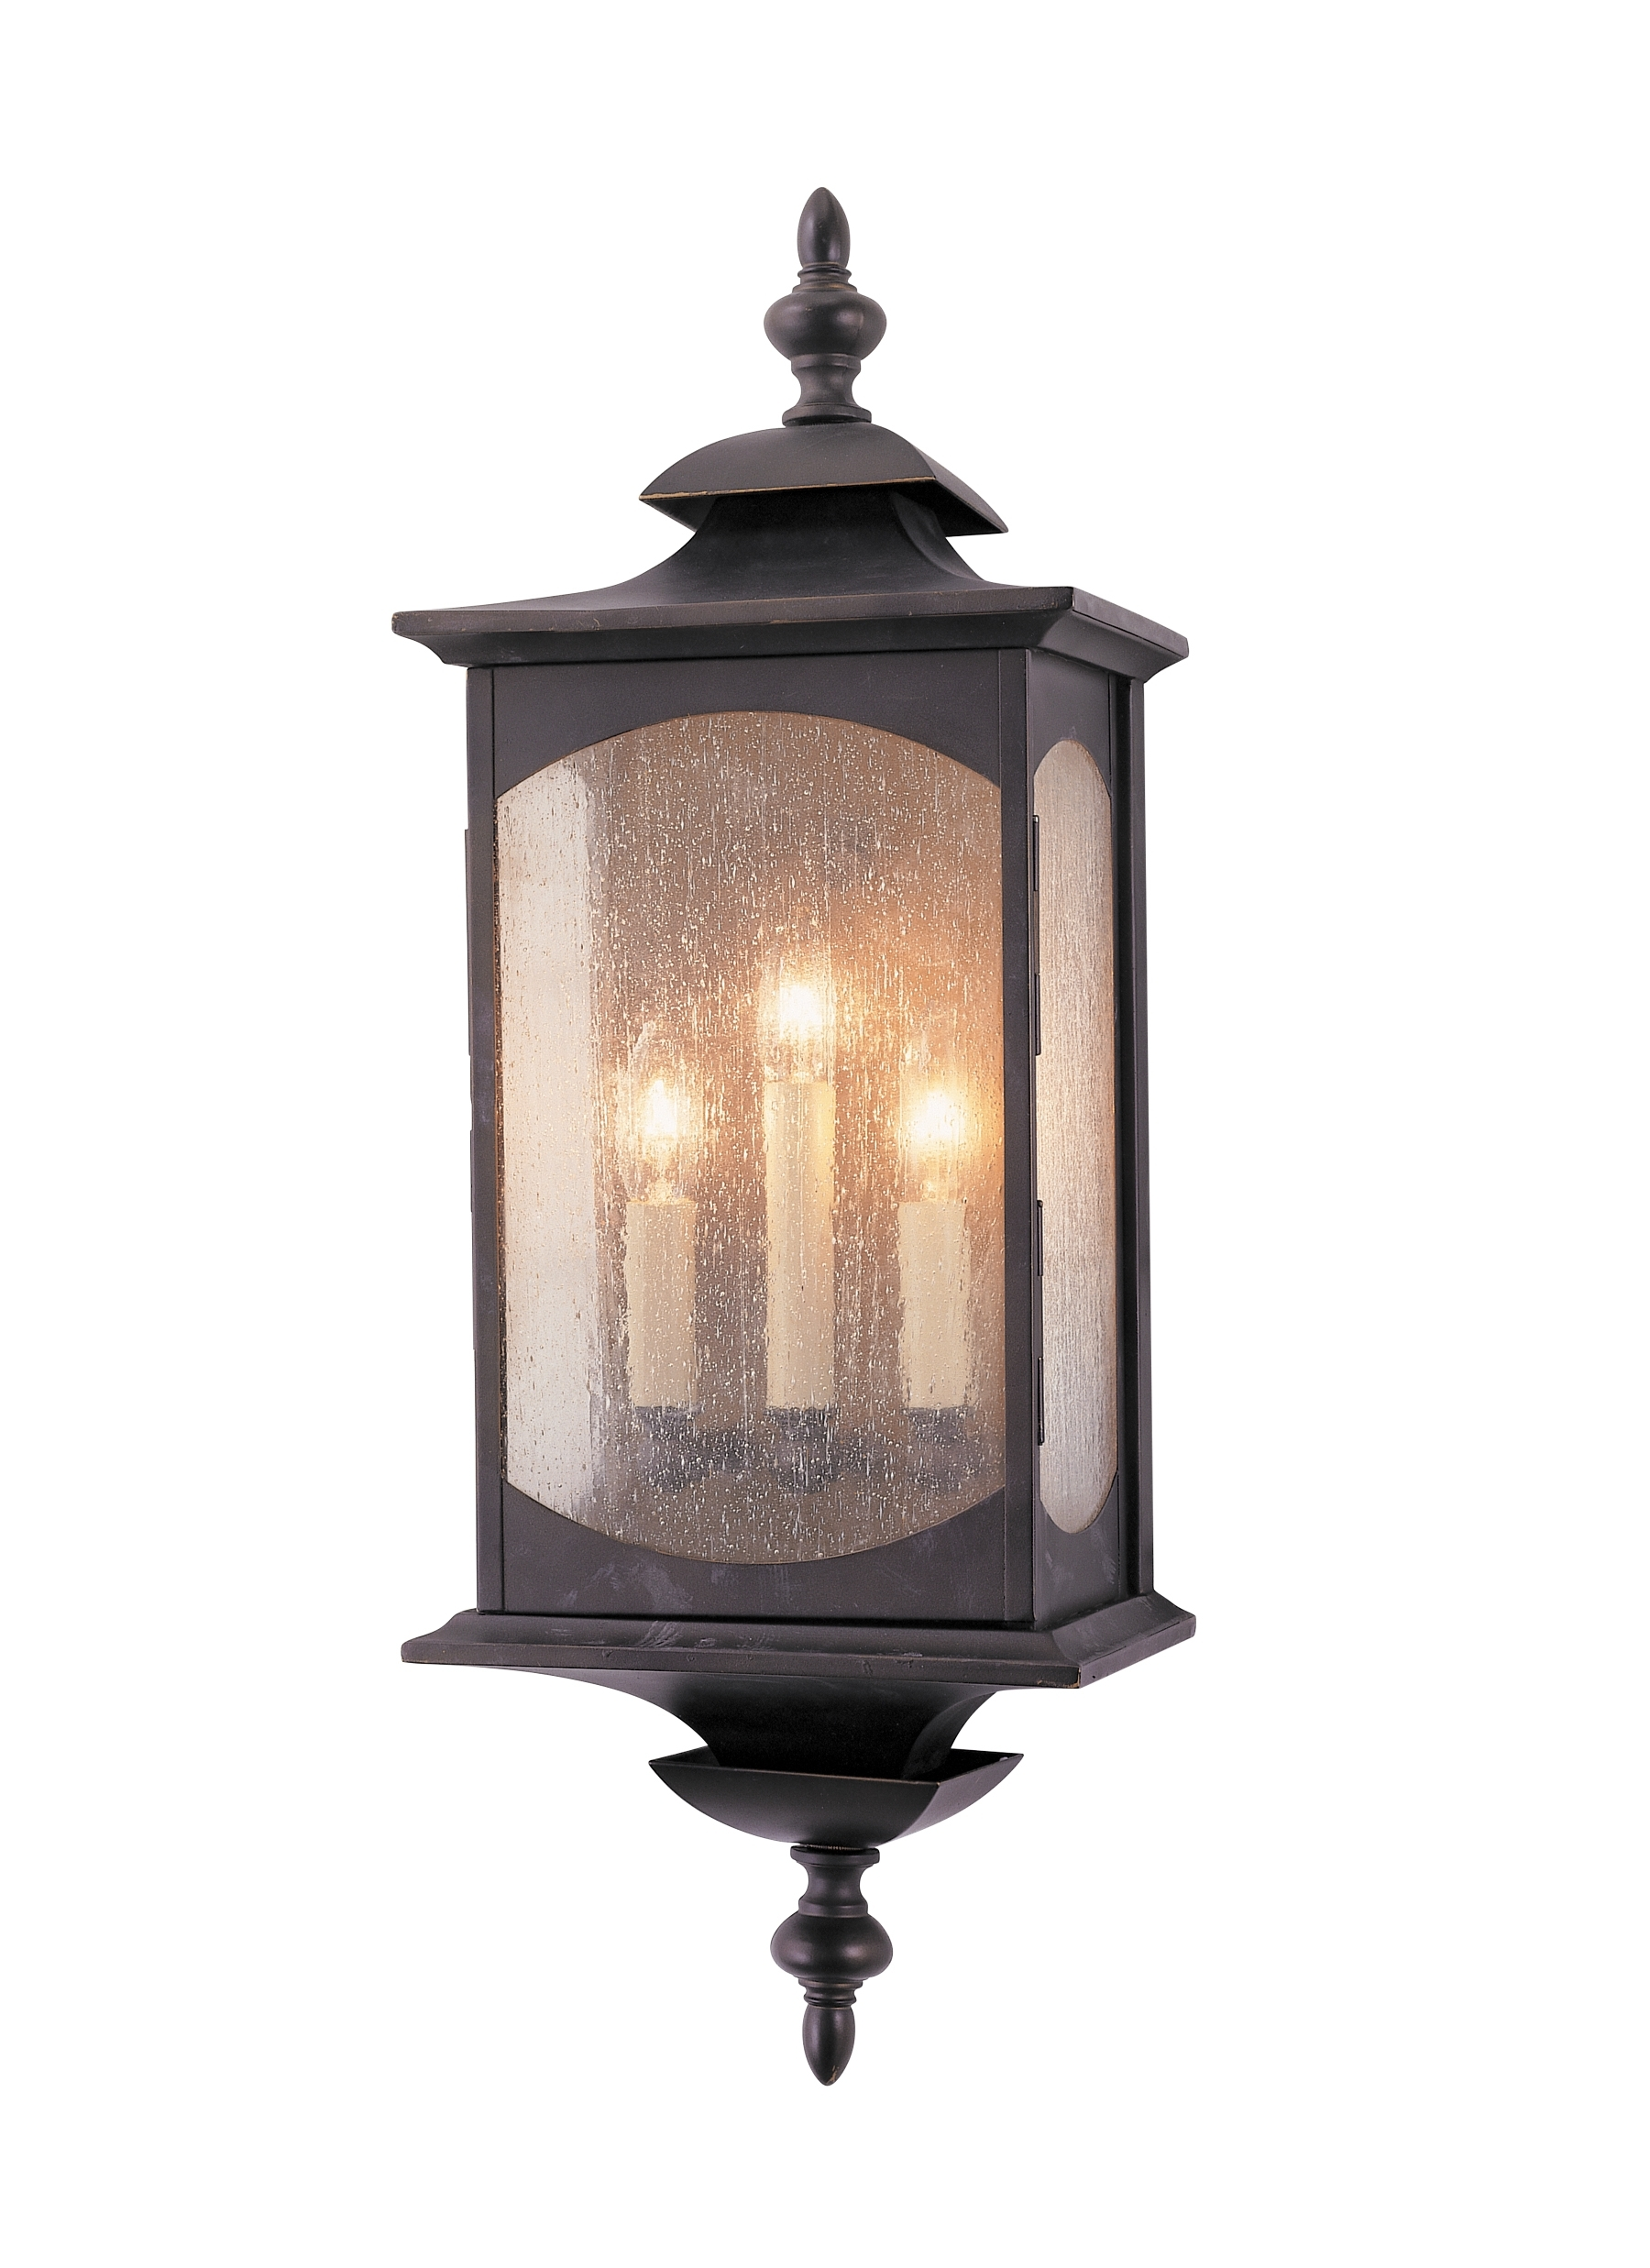 Ol2602Orb,3 - Light Wall Lantern,oil Rubbed Bronze intended for Outdoor Oil Lanterns for Patio (Image 9 of 20)